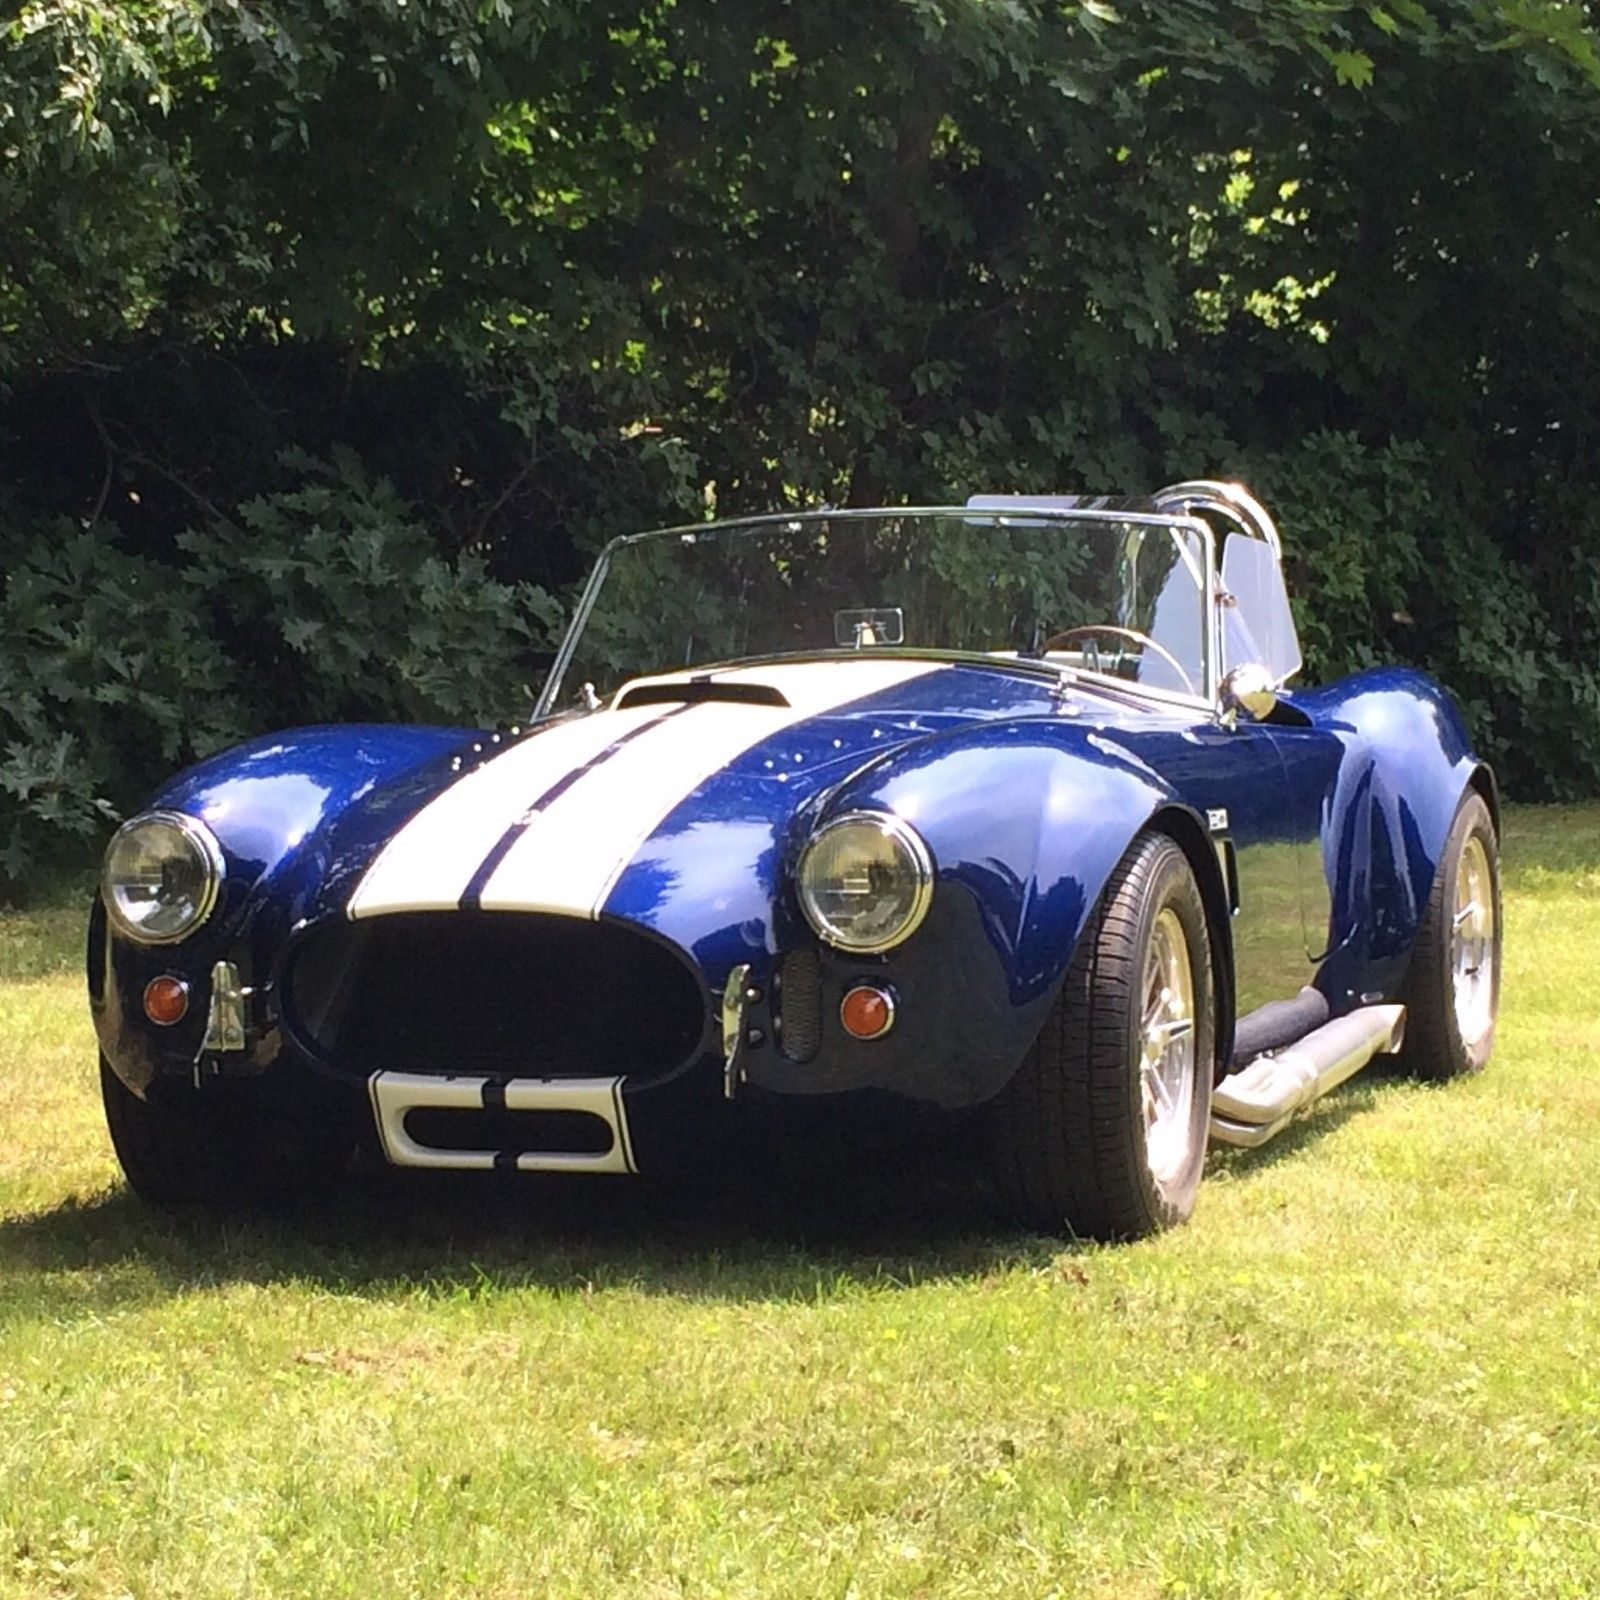 New Parts 1965 Factory Five Cobra Replica For Sale